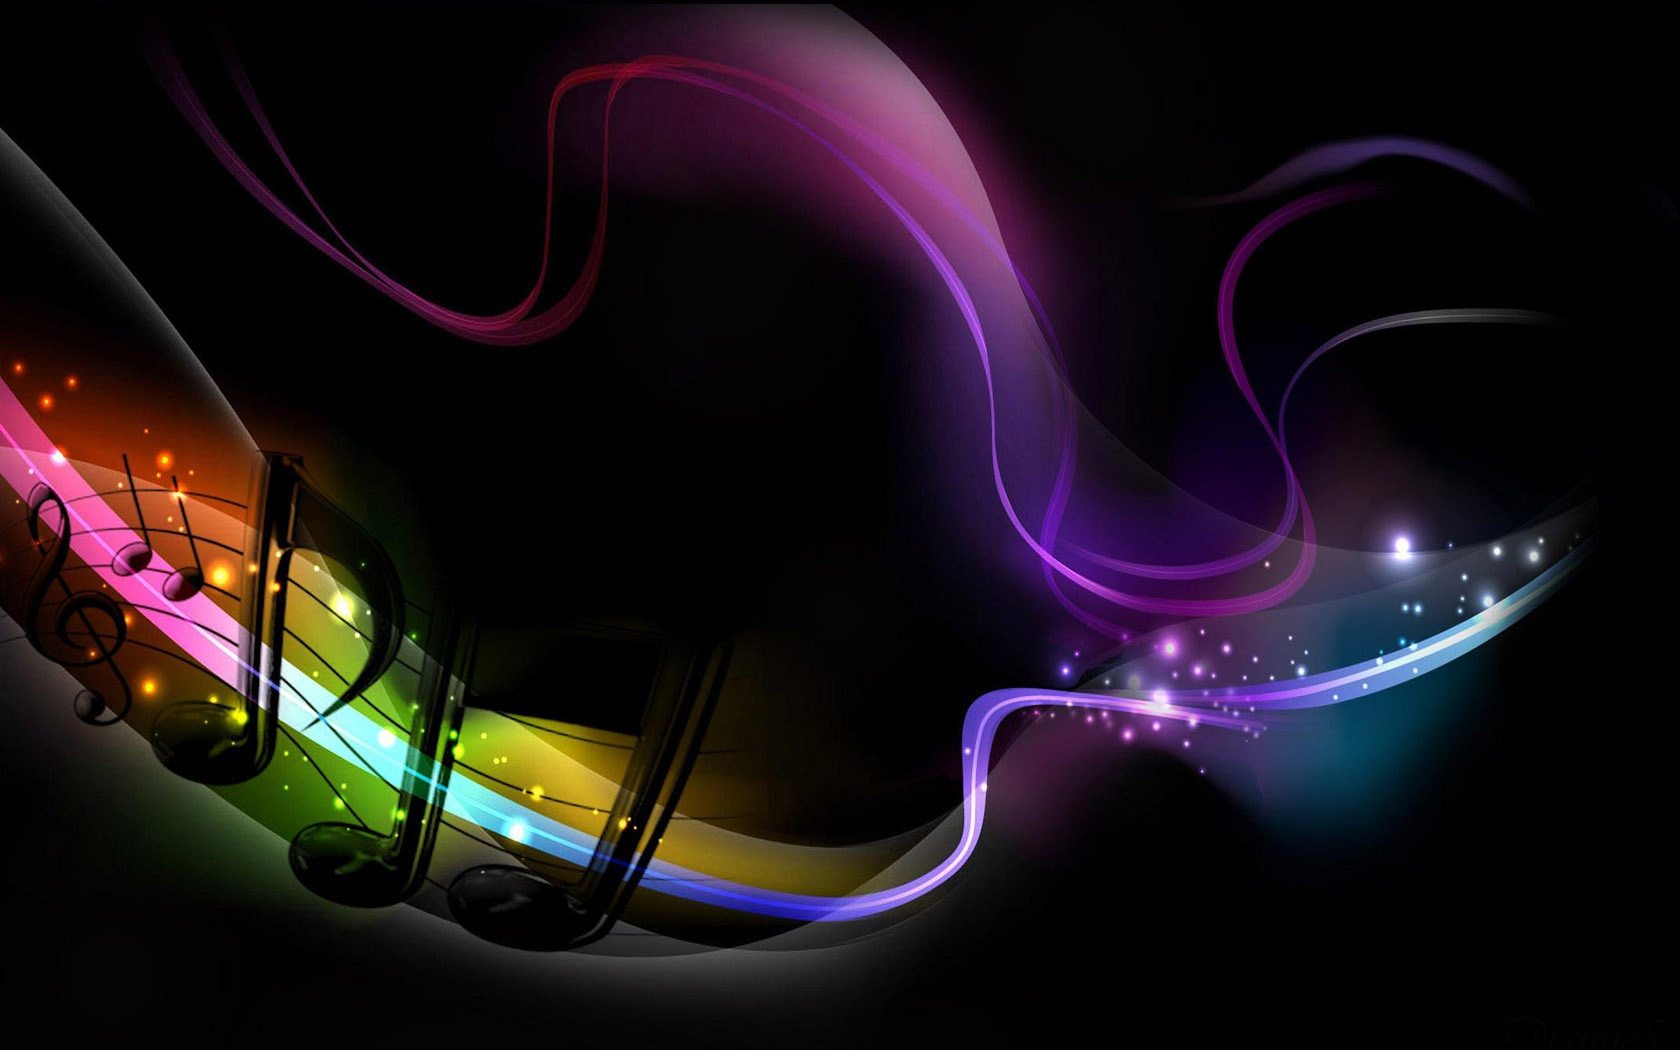 Good Wallpaper Music Rainbow - color-of-music-colorful-fever-38001572-1680-1050  Gallery_651291.jpg